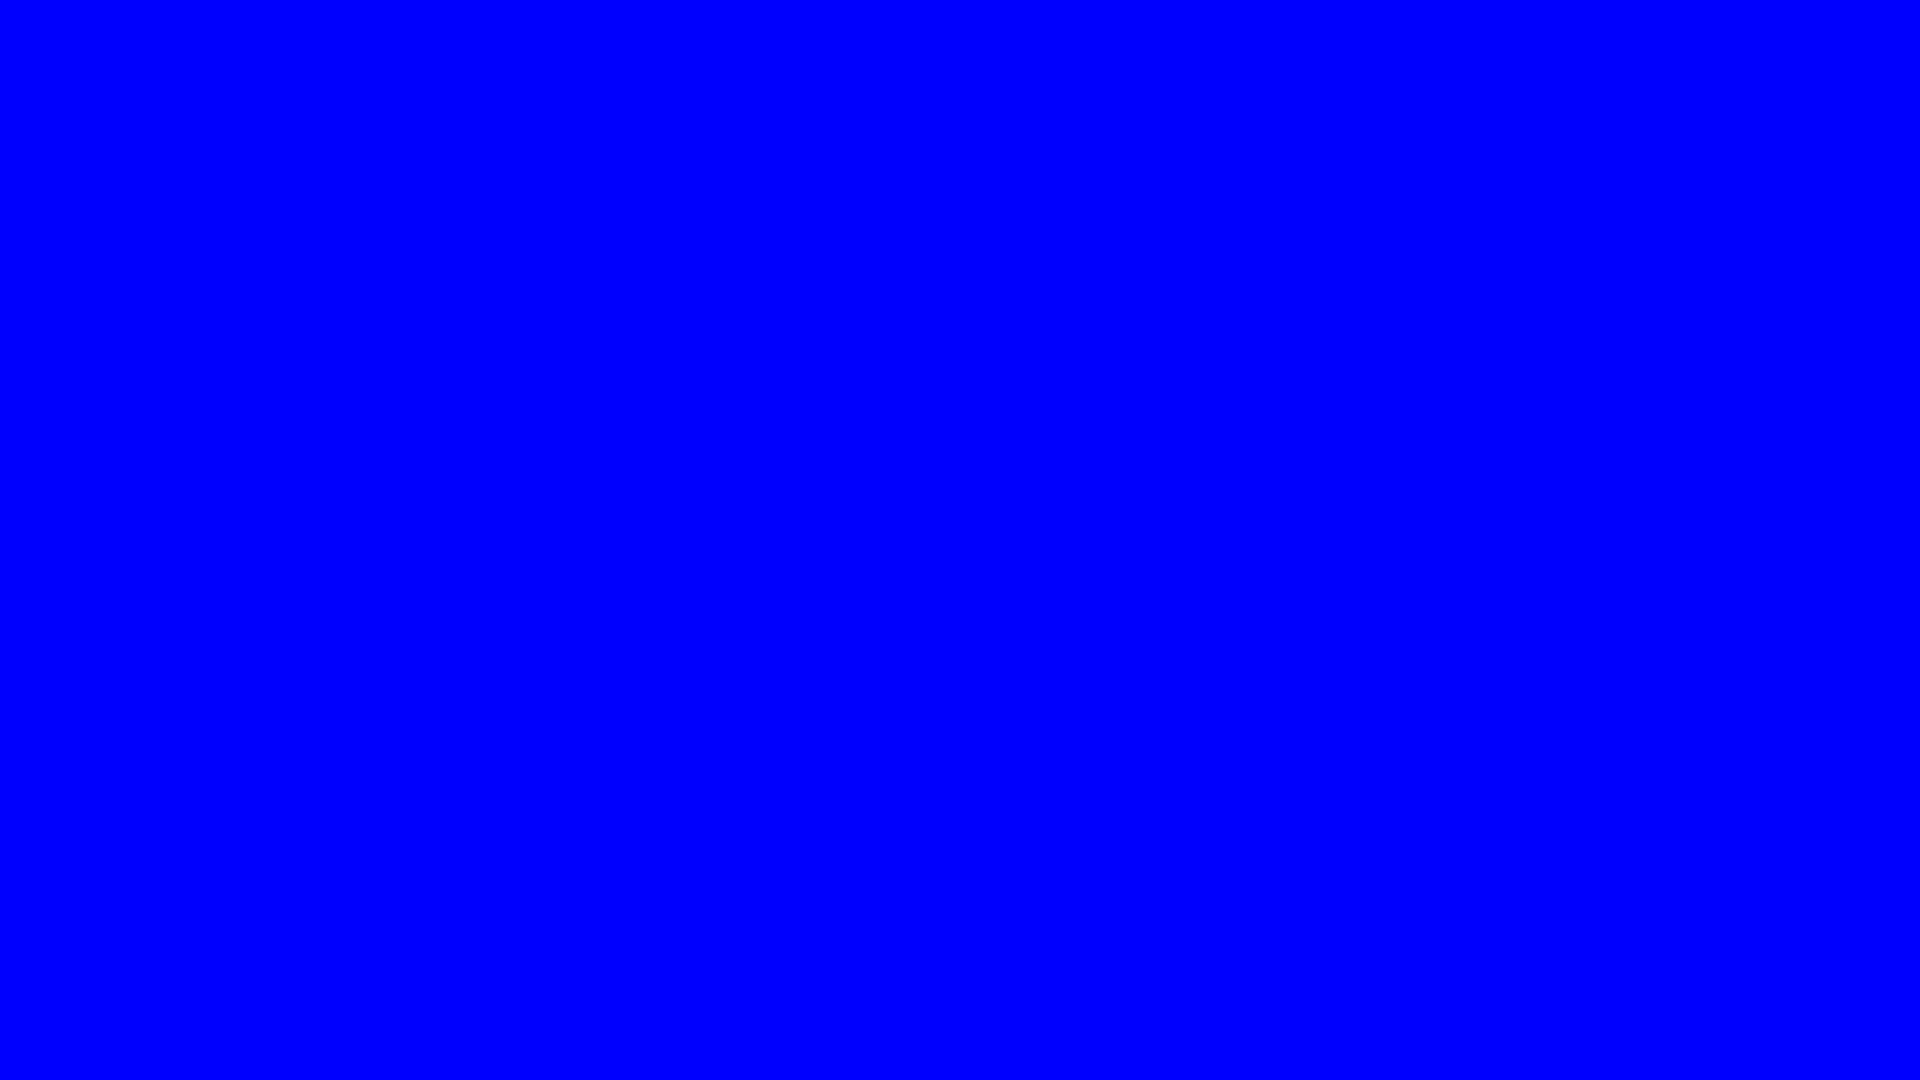 1920x1080 Blue Solid Color Background